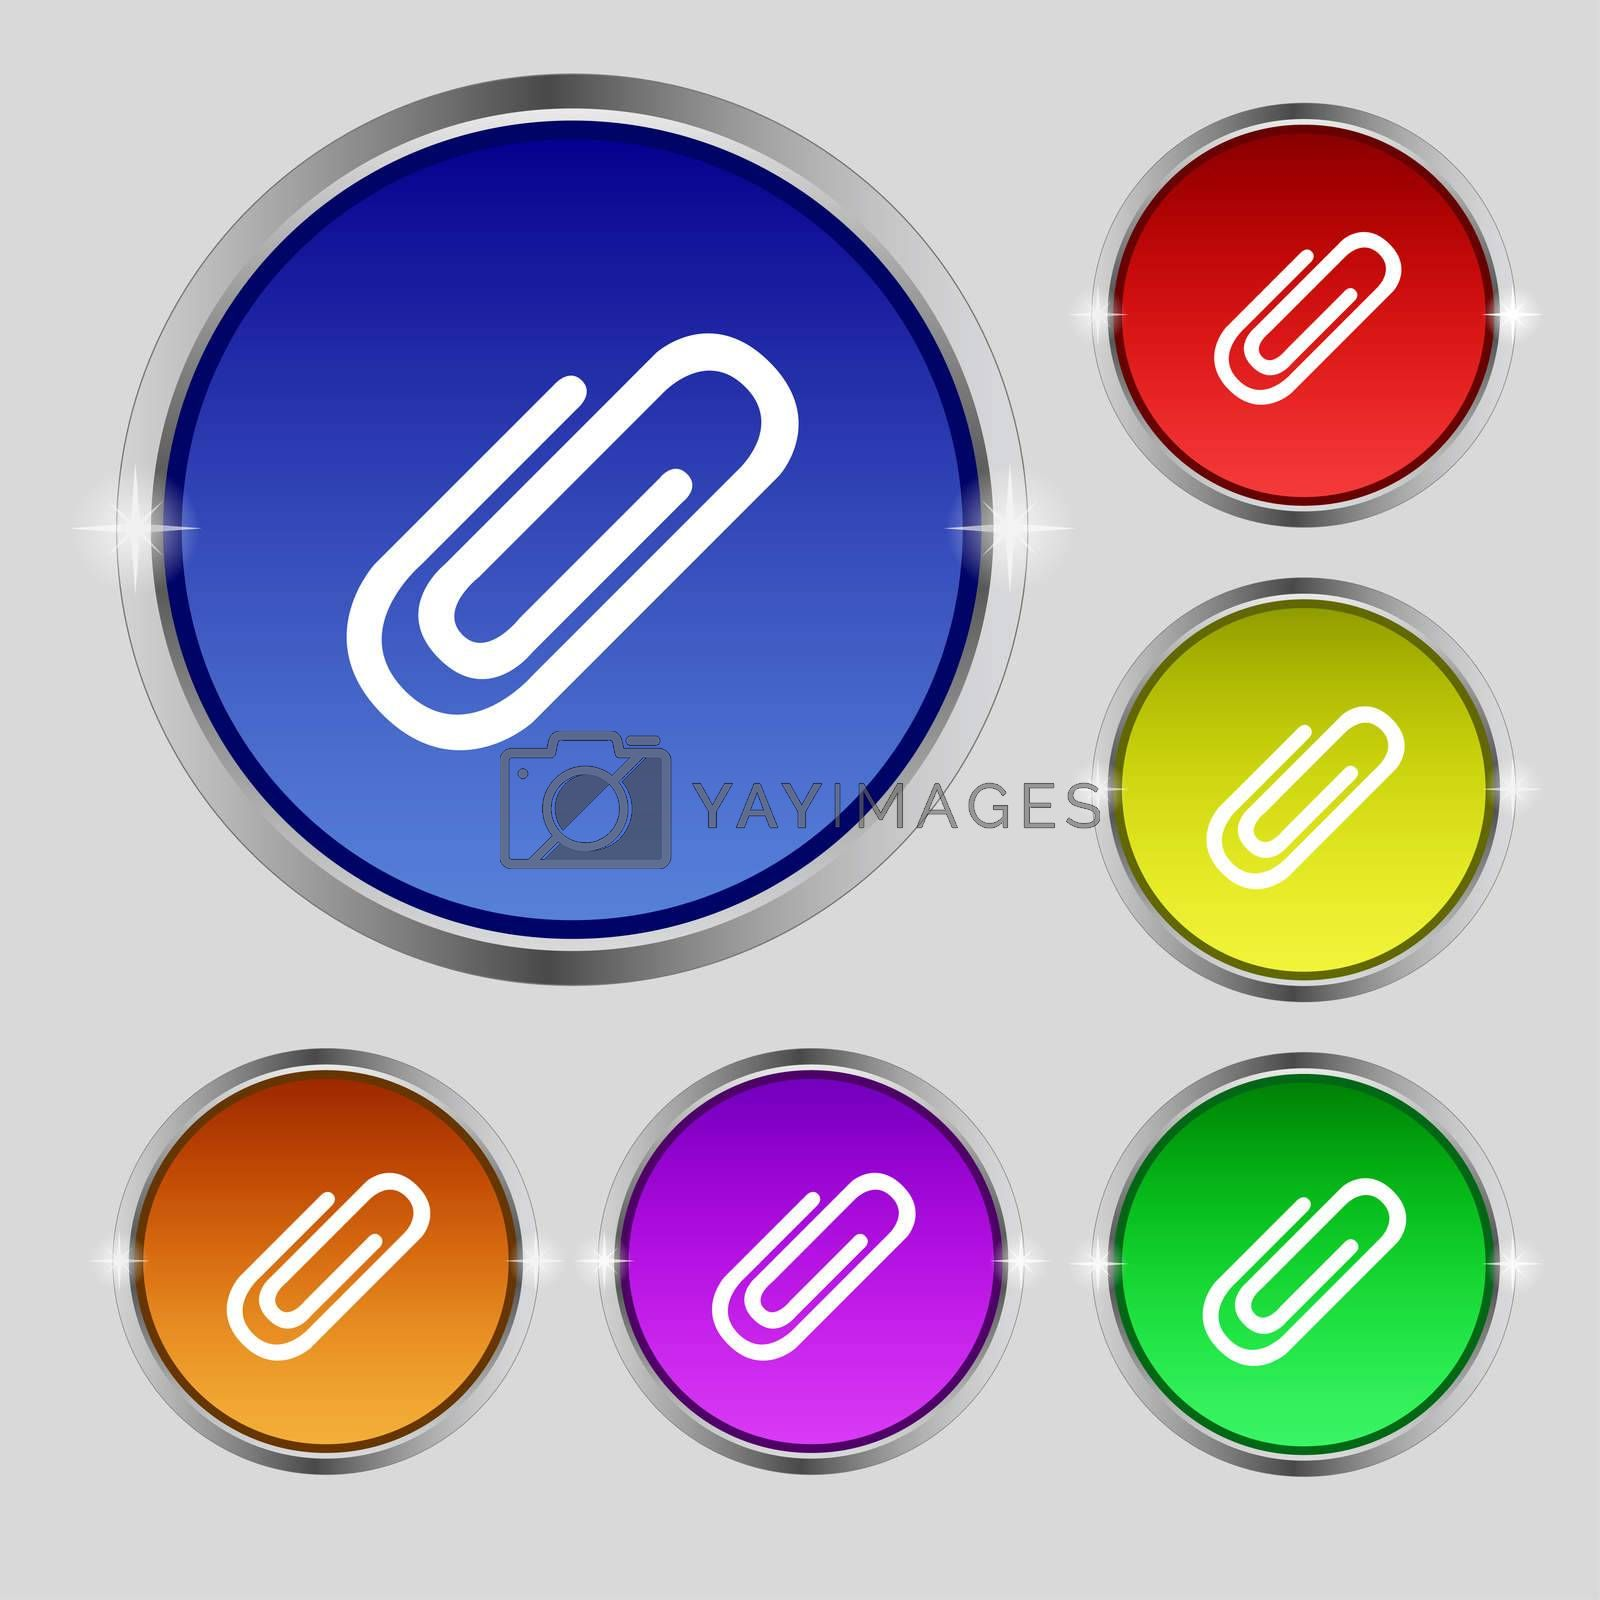 Paper clip sign icon. Clip symbol. Set of colored buttons.  by Serhii Lohvyniuk